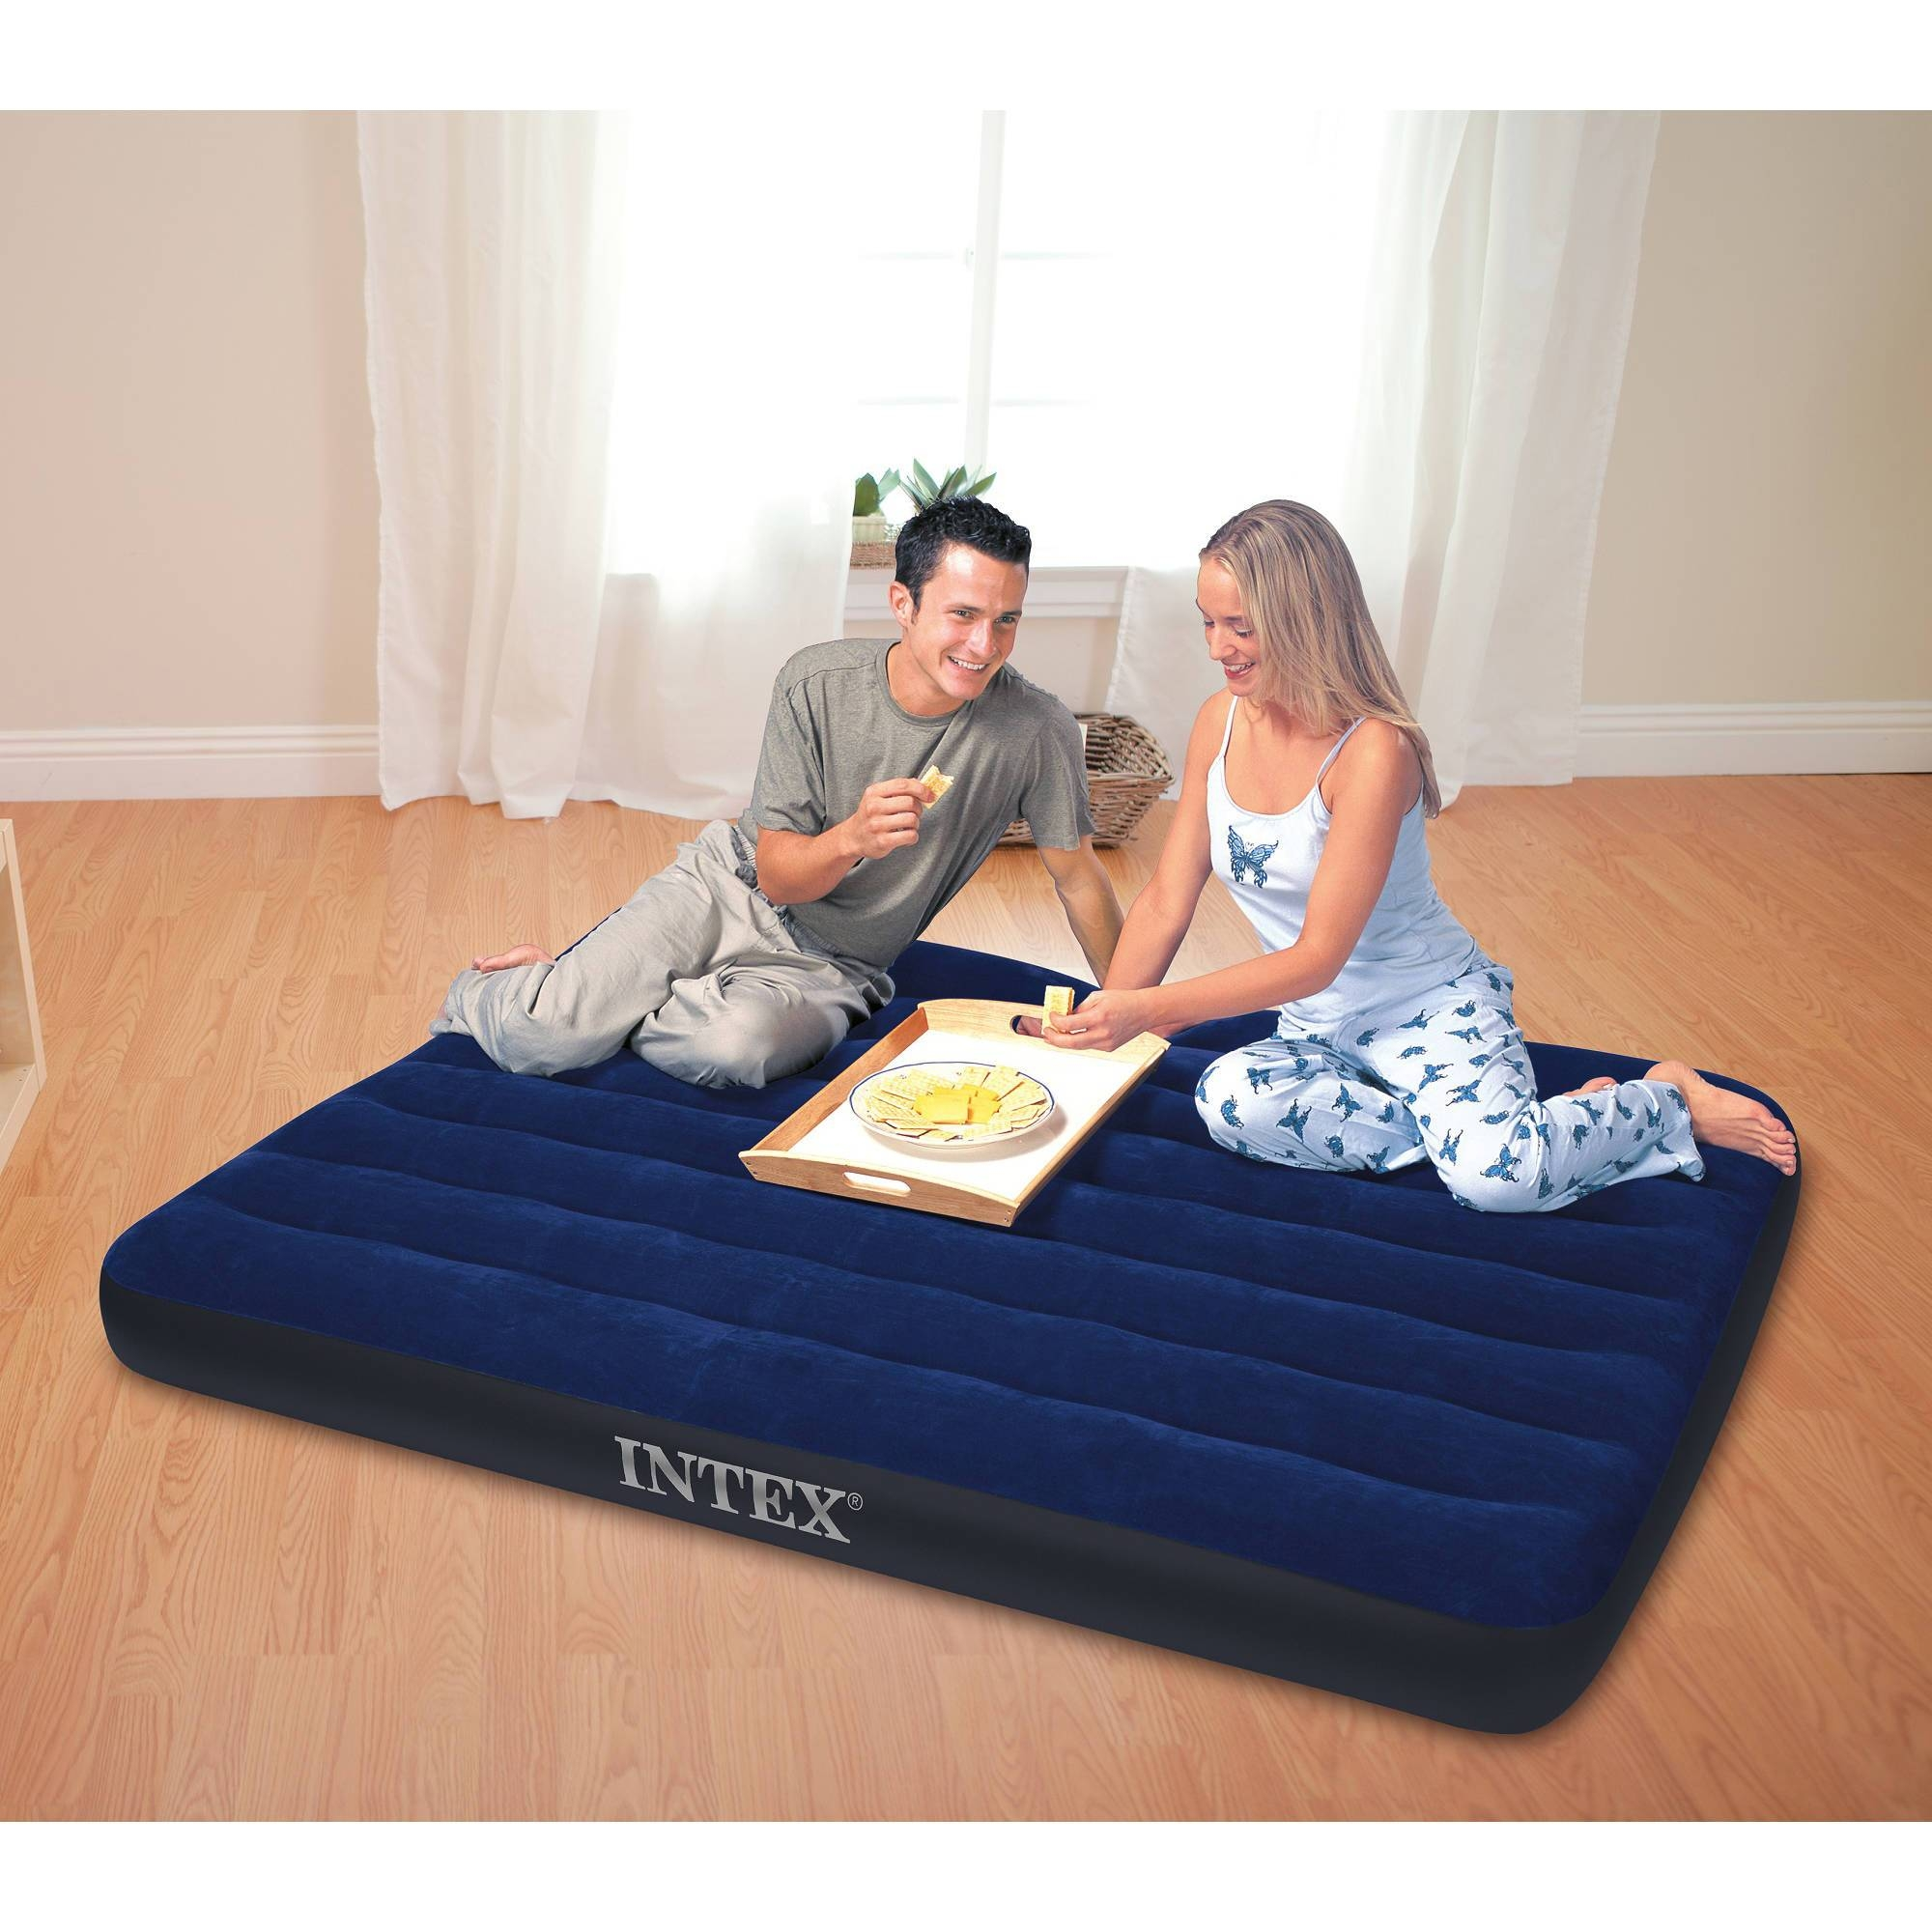 Intex Inflatable Fabric Camping Mattress With Built-In Pillow within Inflatable Full Size Mattress (Image 11 of 15)